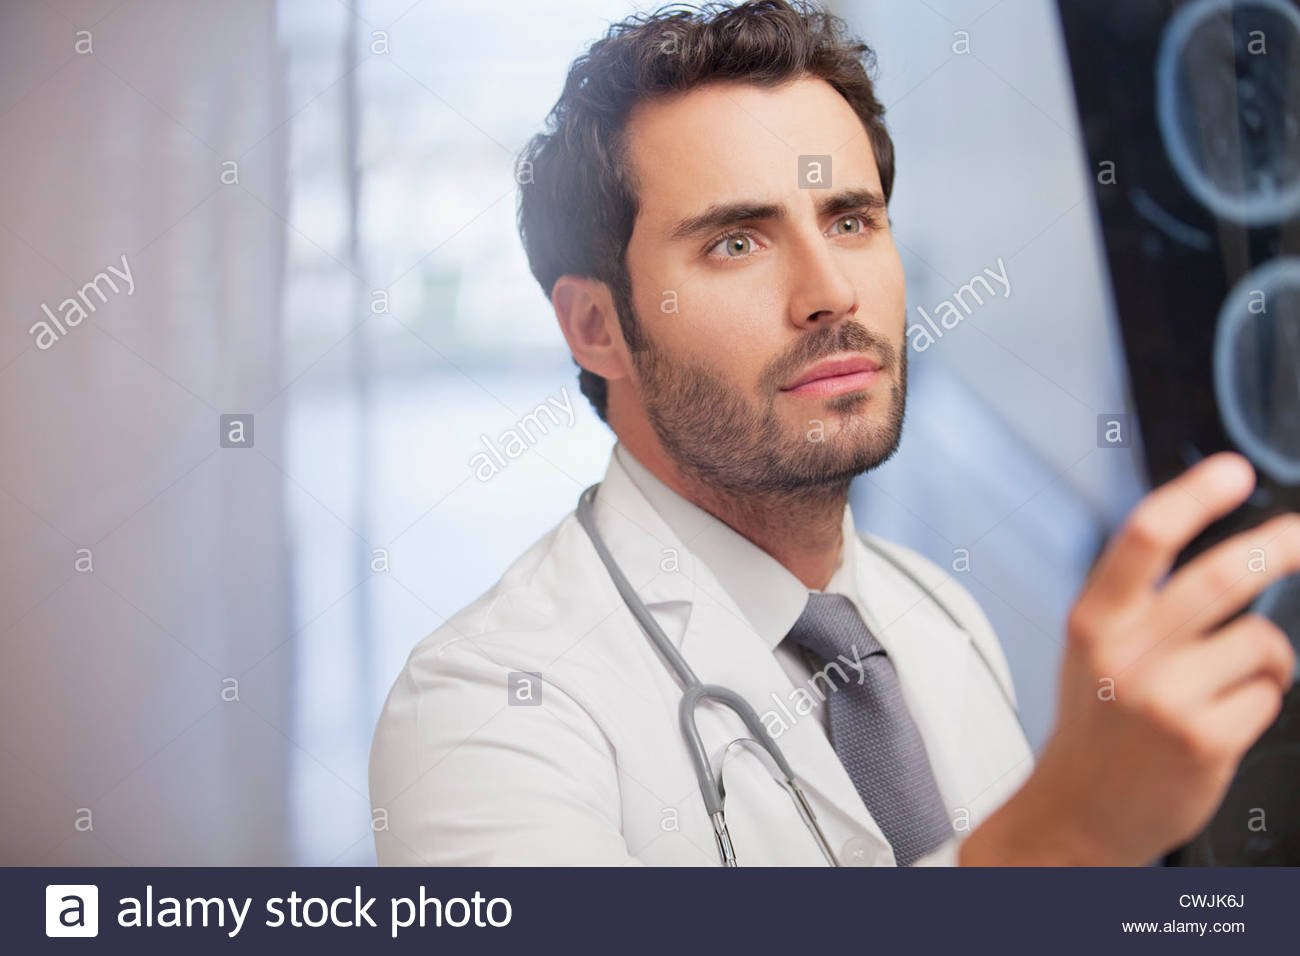 Serious doctor examining x-rays in hospital corridor - Stock Image